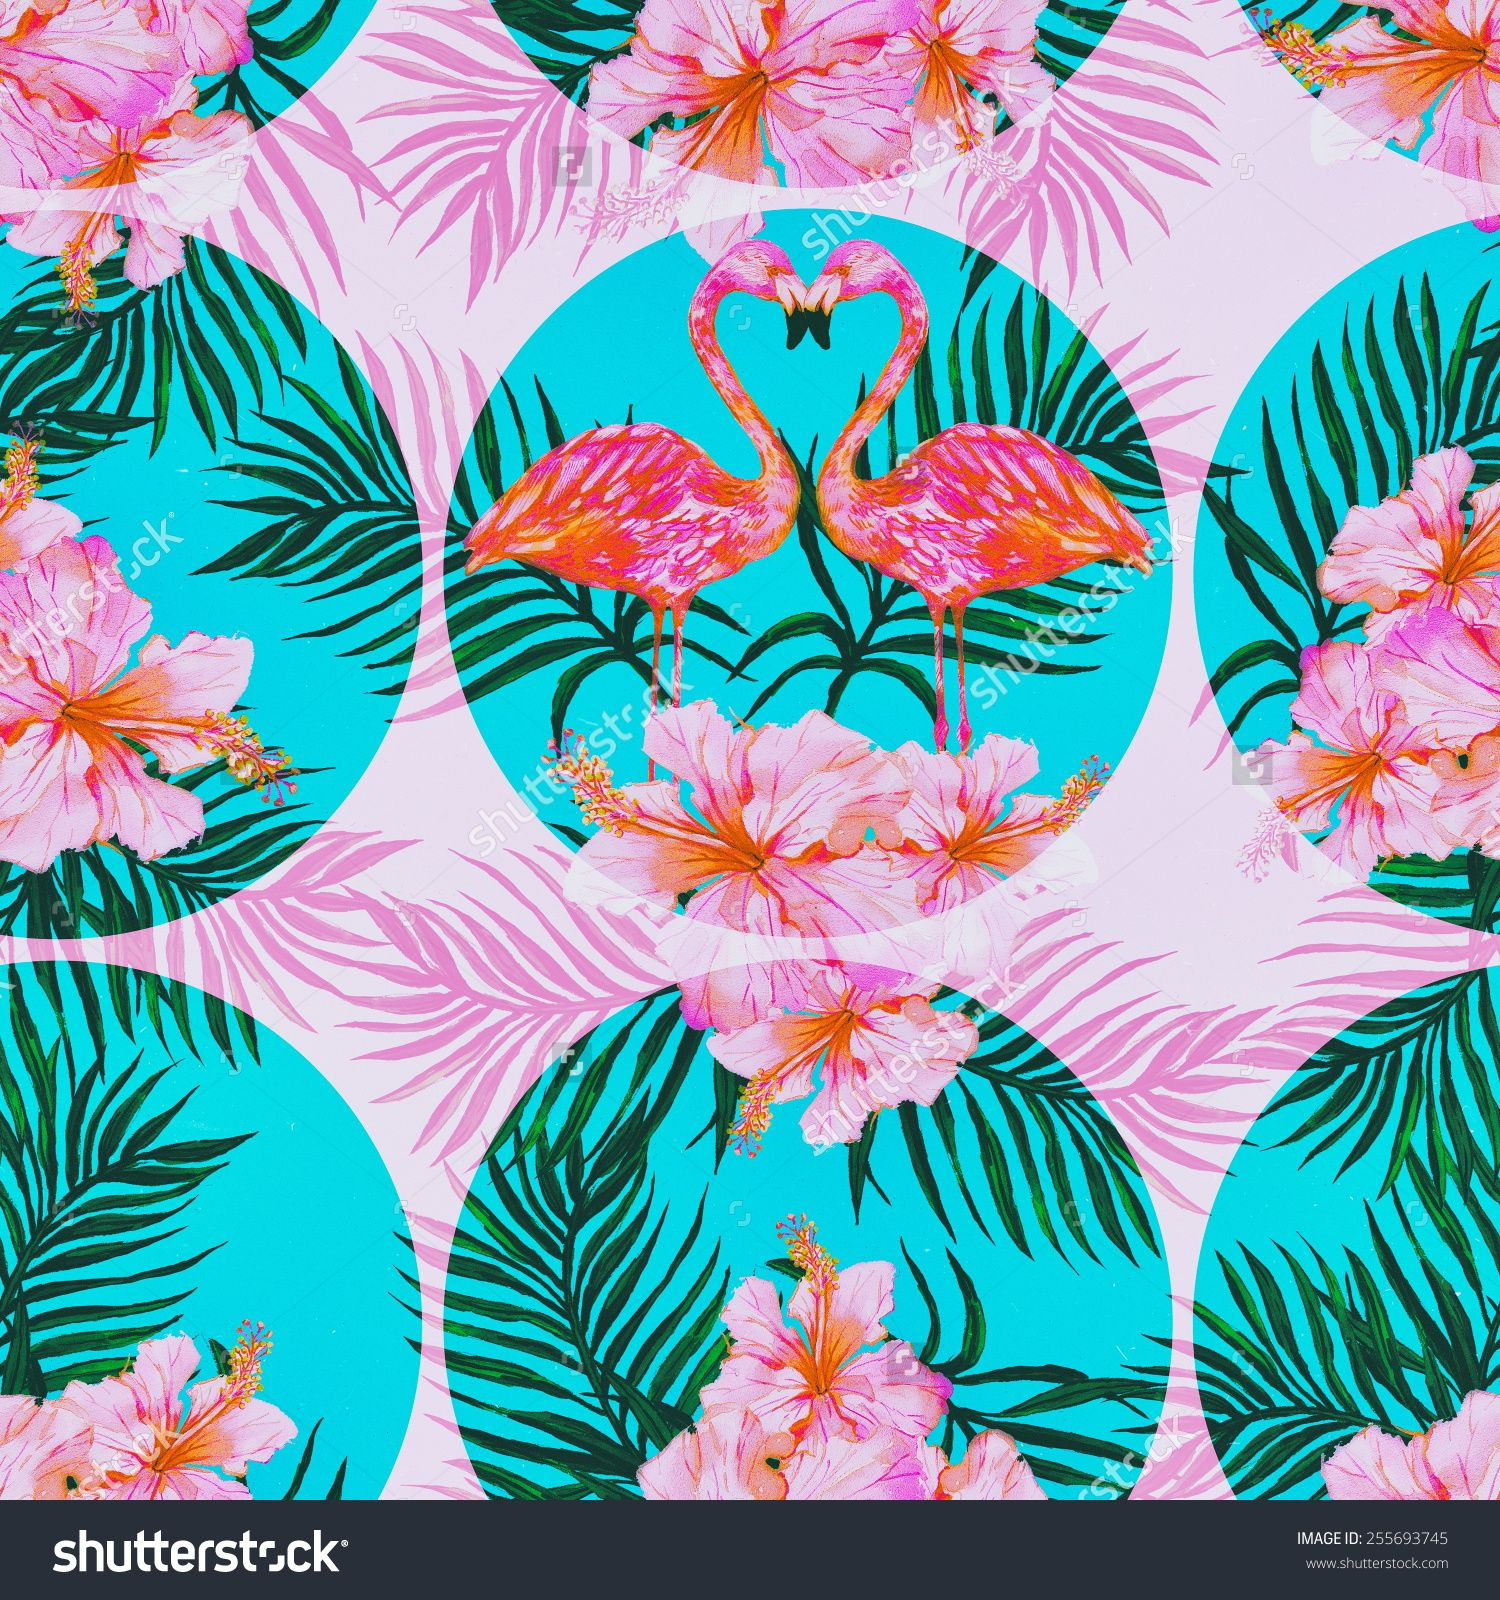 Vintage Style Tropical Bird And Flowers Background: Beautiful Seamless Vintage Floral Pattern Background With